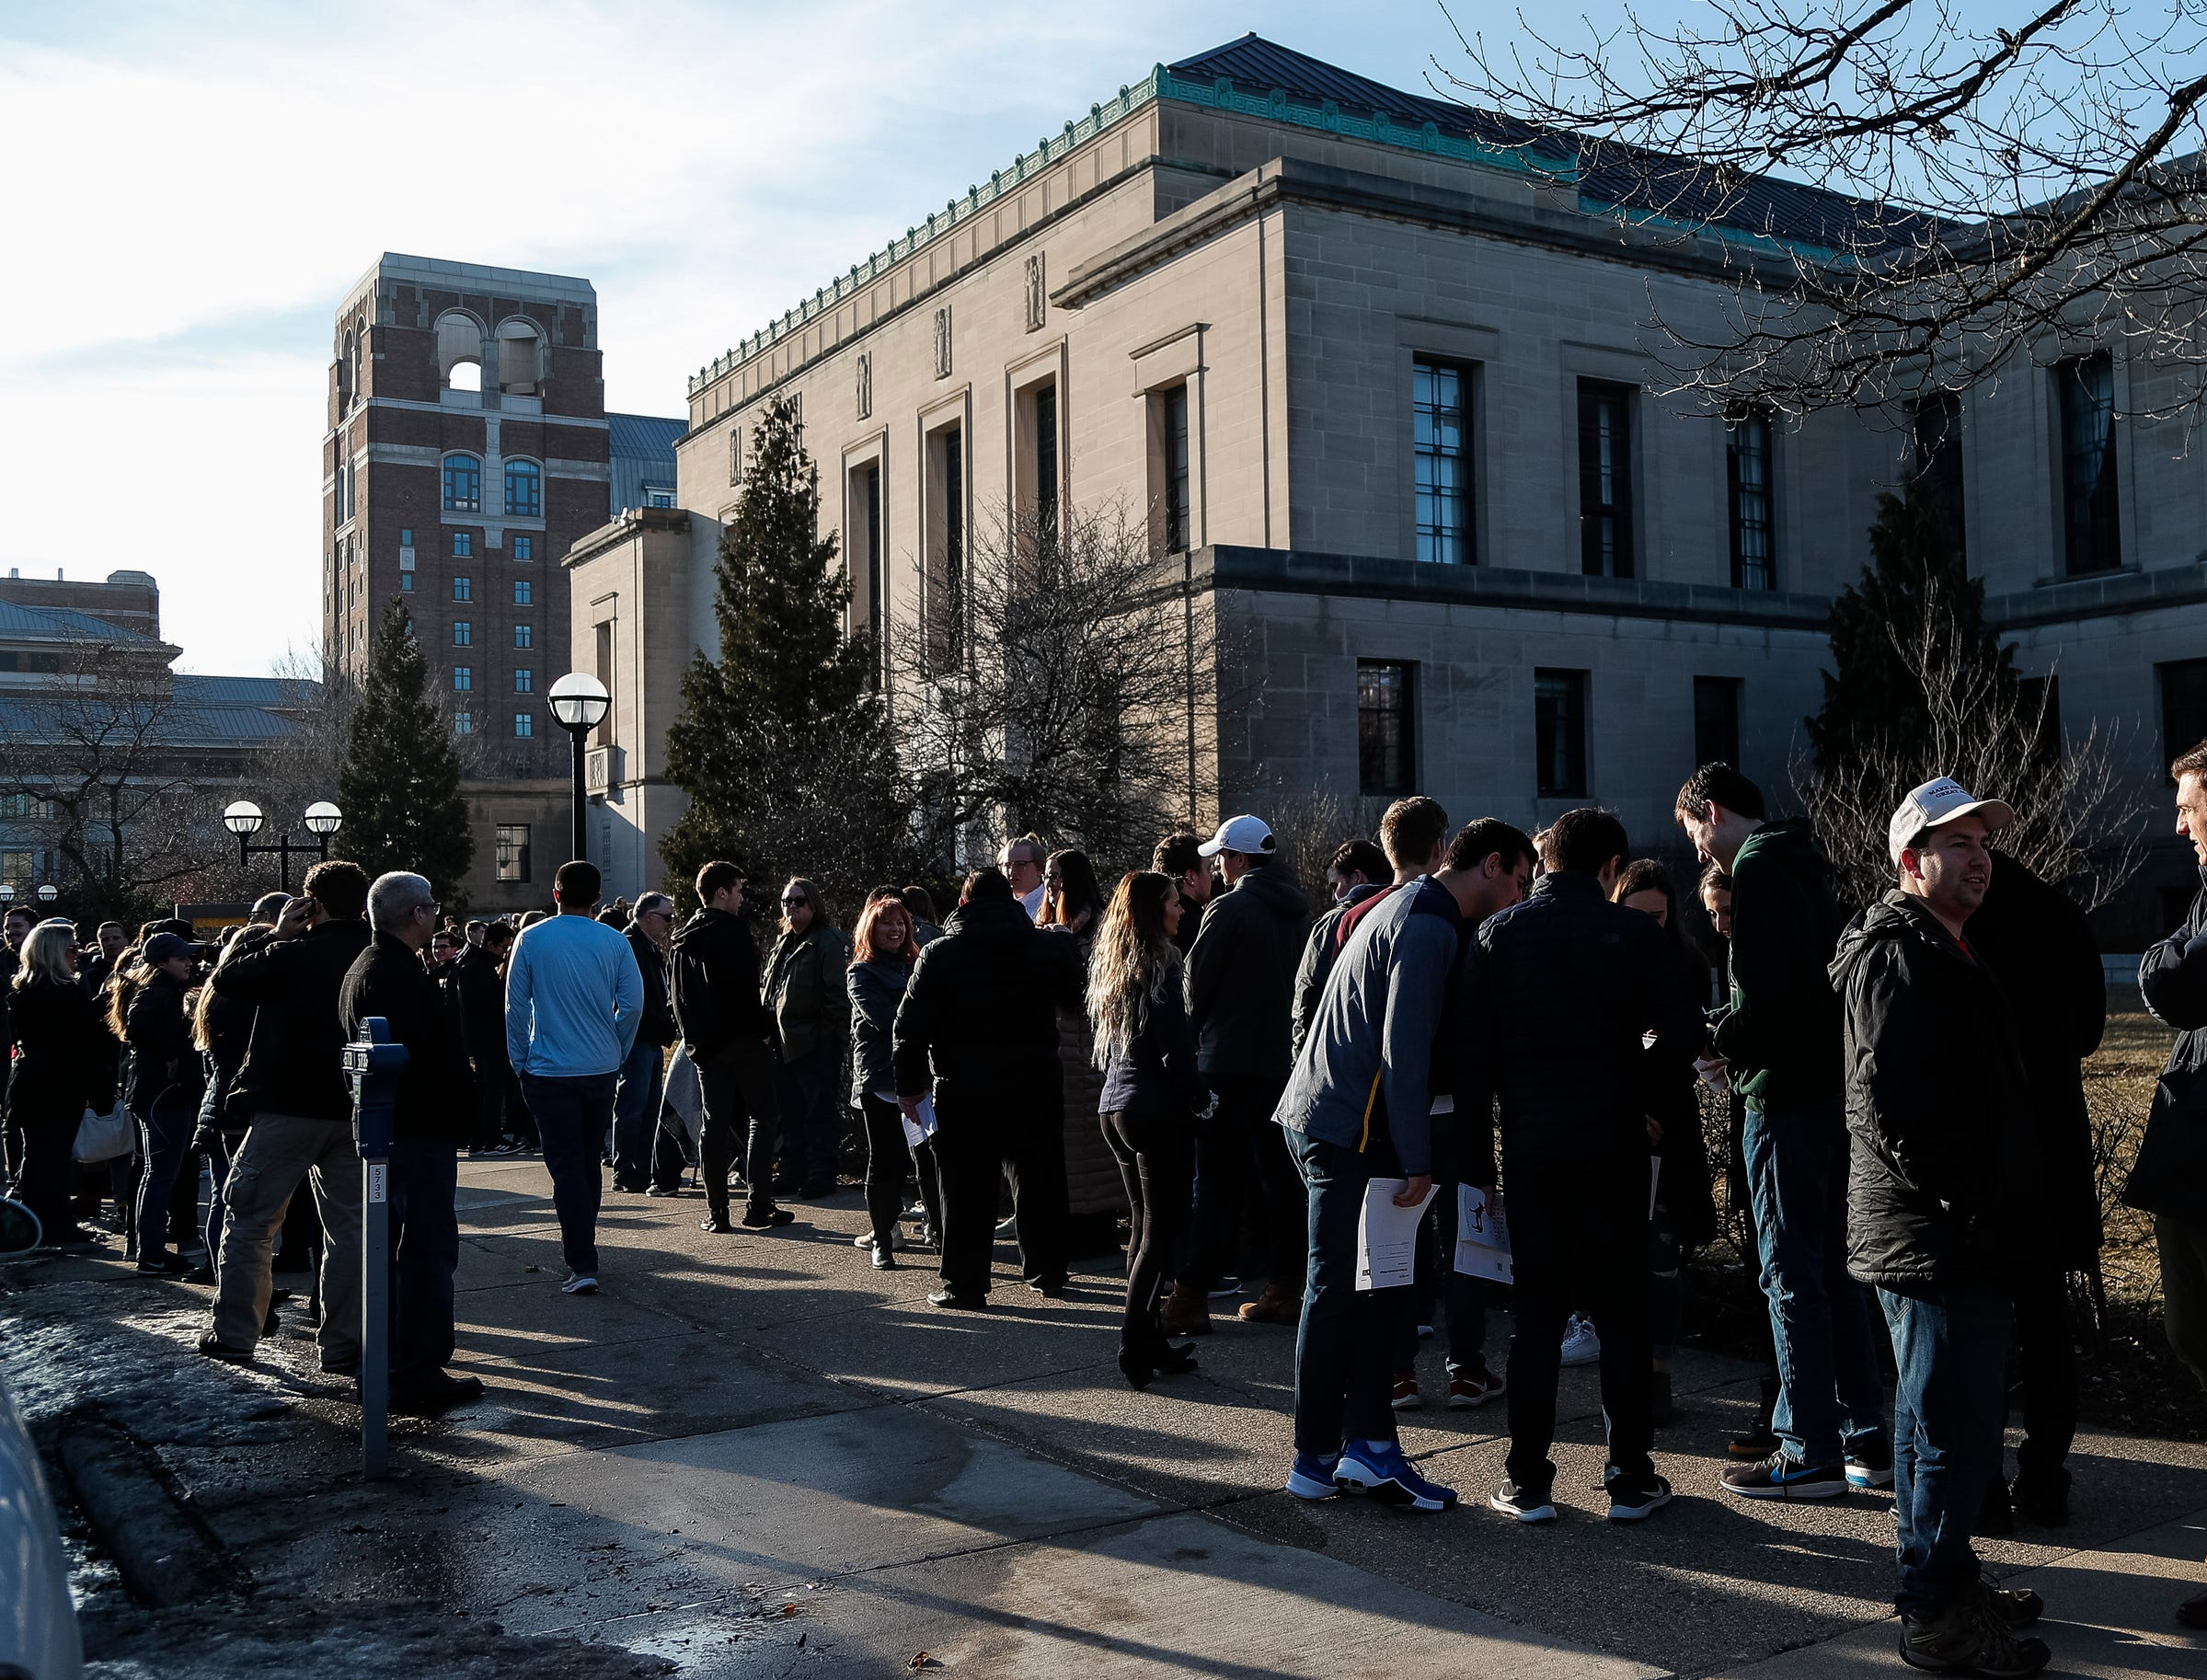 Hundreds line up outside of the Rackham Auditorium on U-M central campus in Ann Arbor to attend Ben Shapiro's speech, Tuesday, March 12. , Tuesday, March 12, 2019.